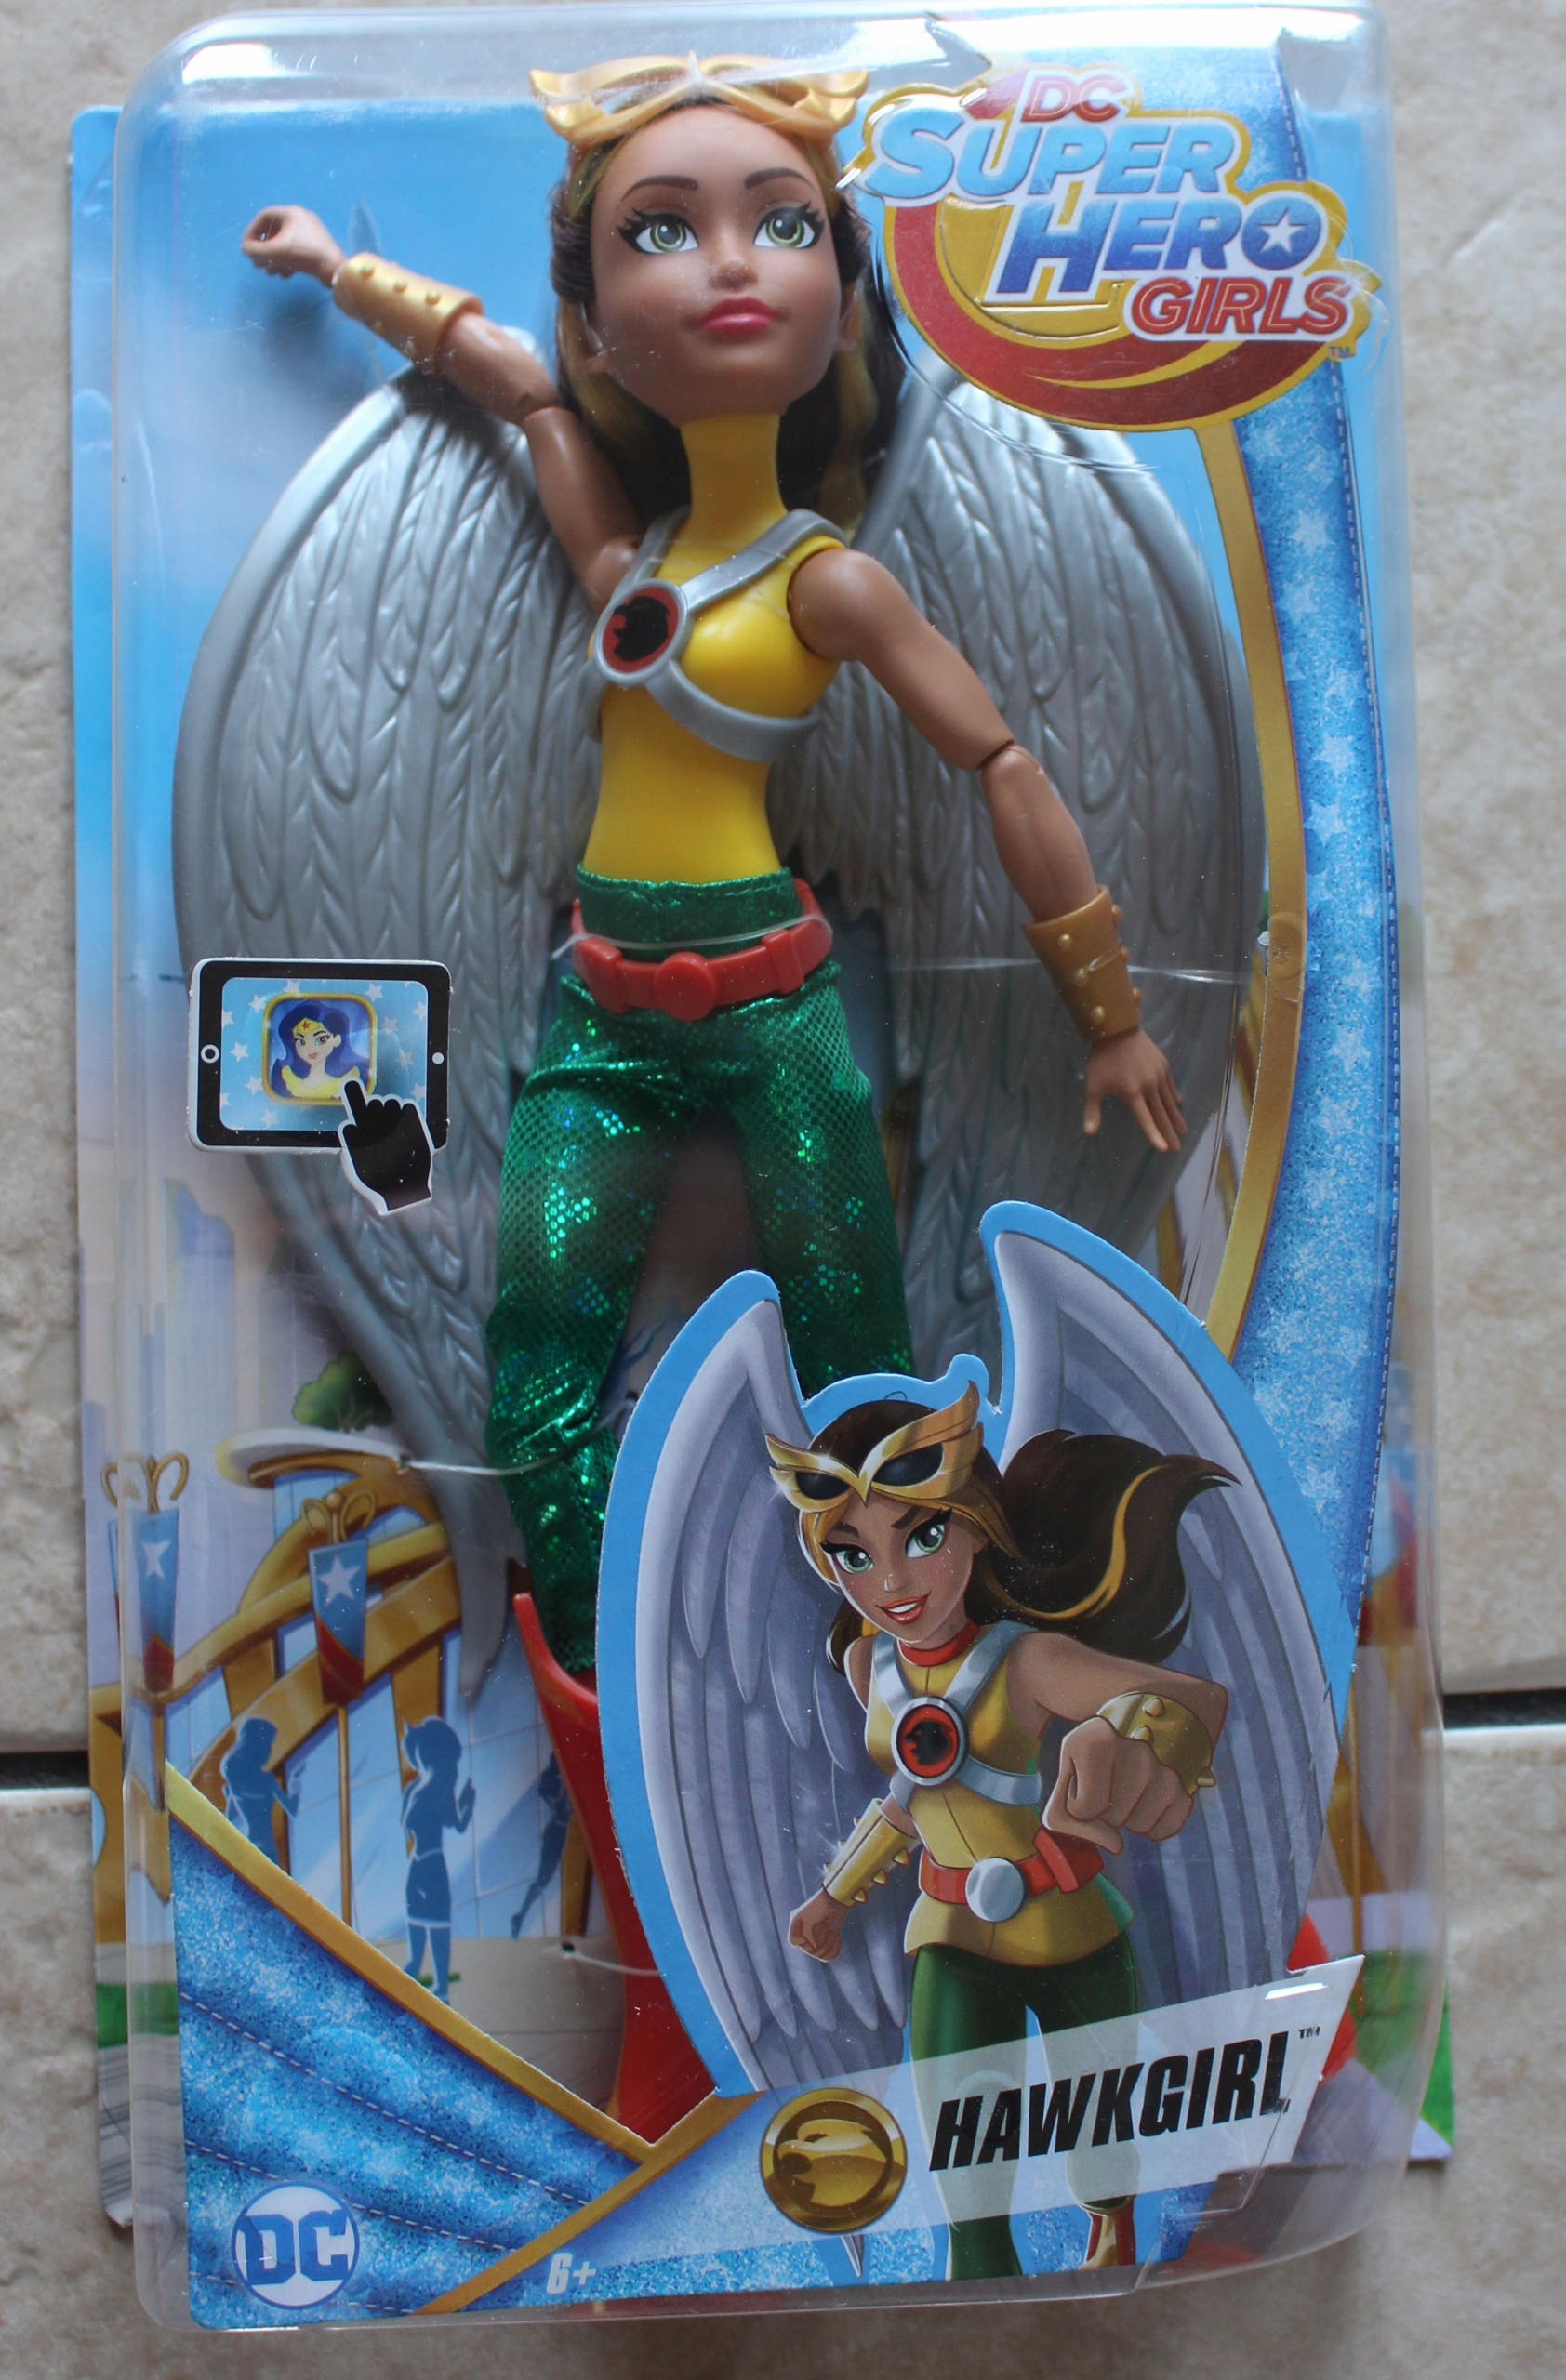 DC SUPER HERO GIRLS HAWKGIRL MATTEL